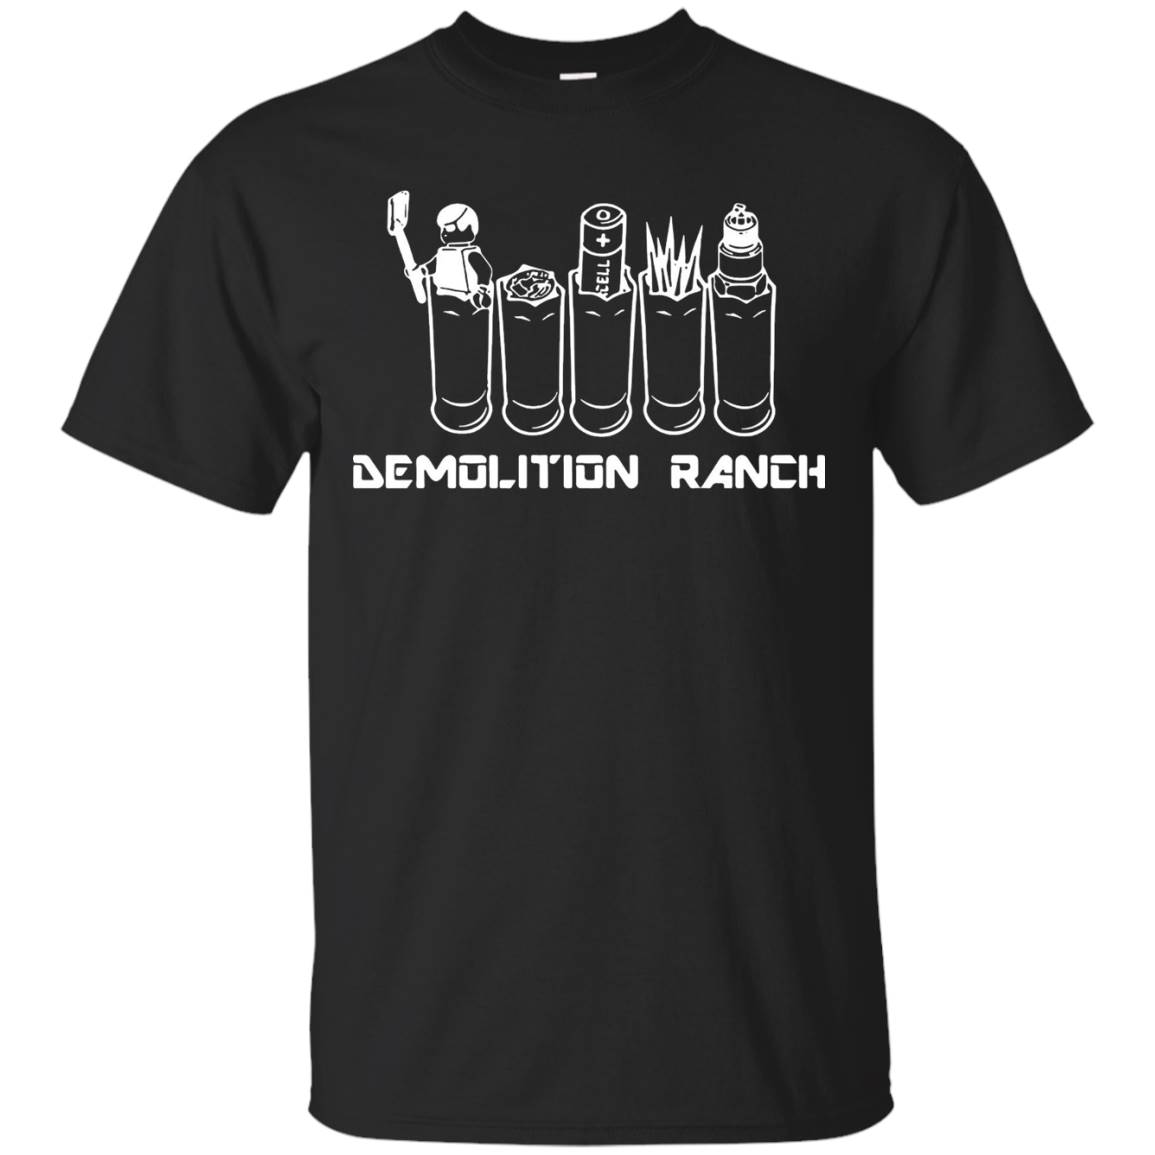 Demolition ranch shirt – Unisex T-Shirt